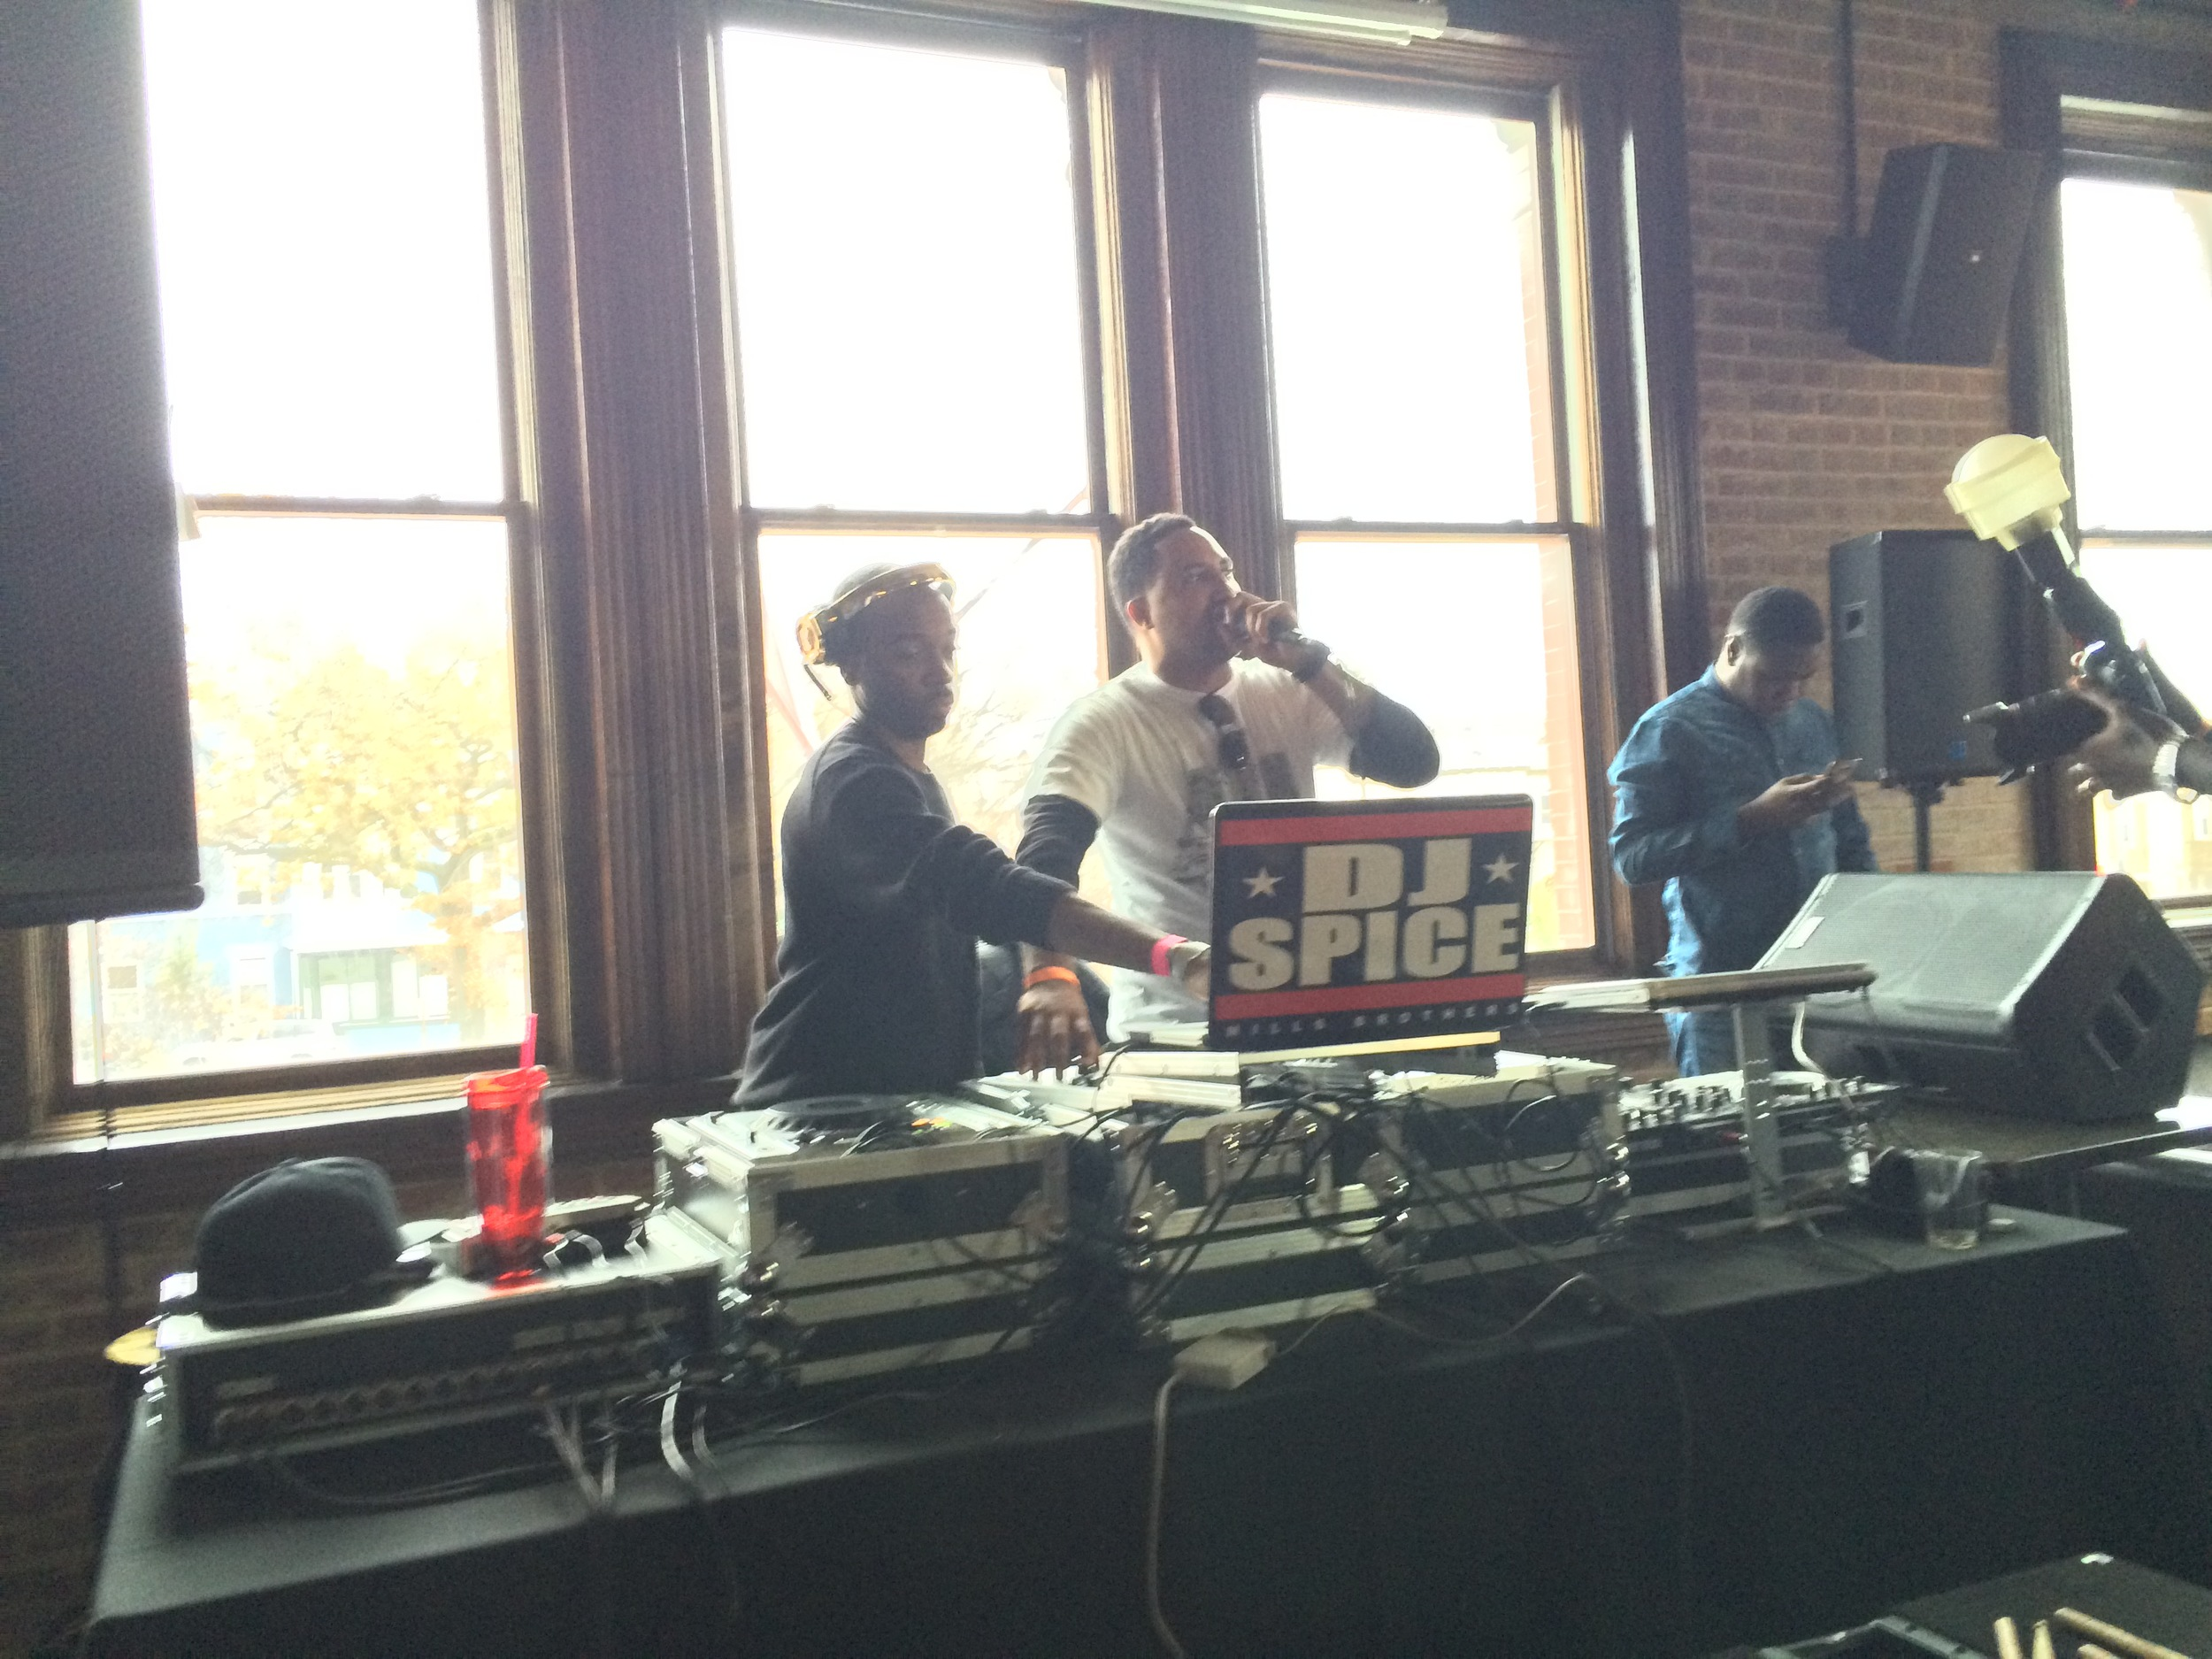 DJ Spice and Barrie Hype at Aftershock